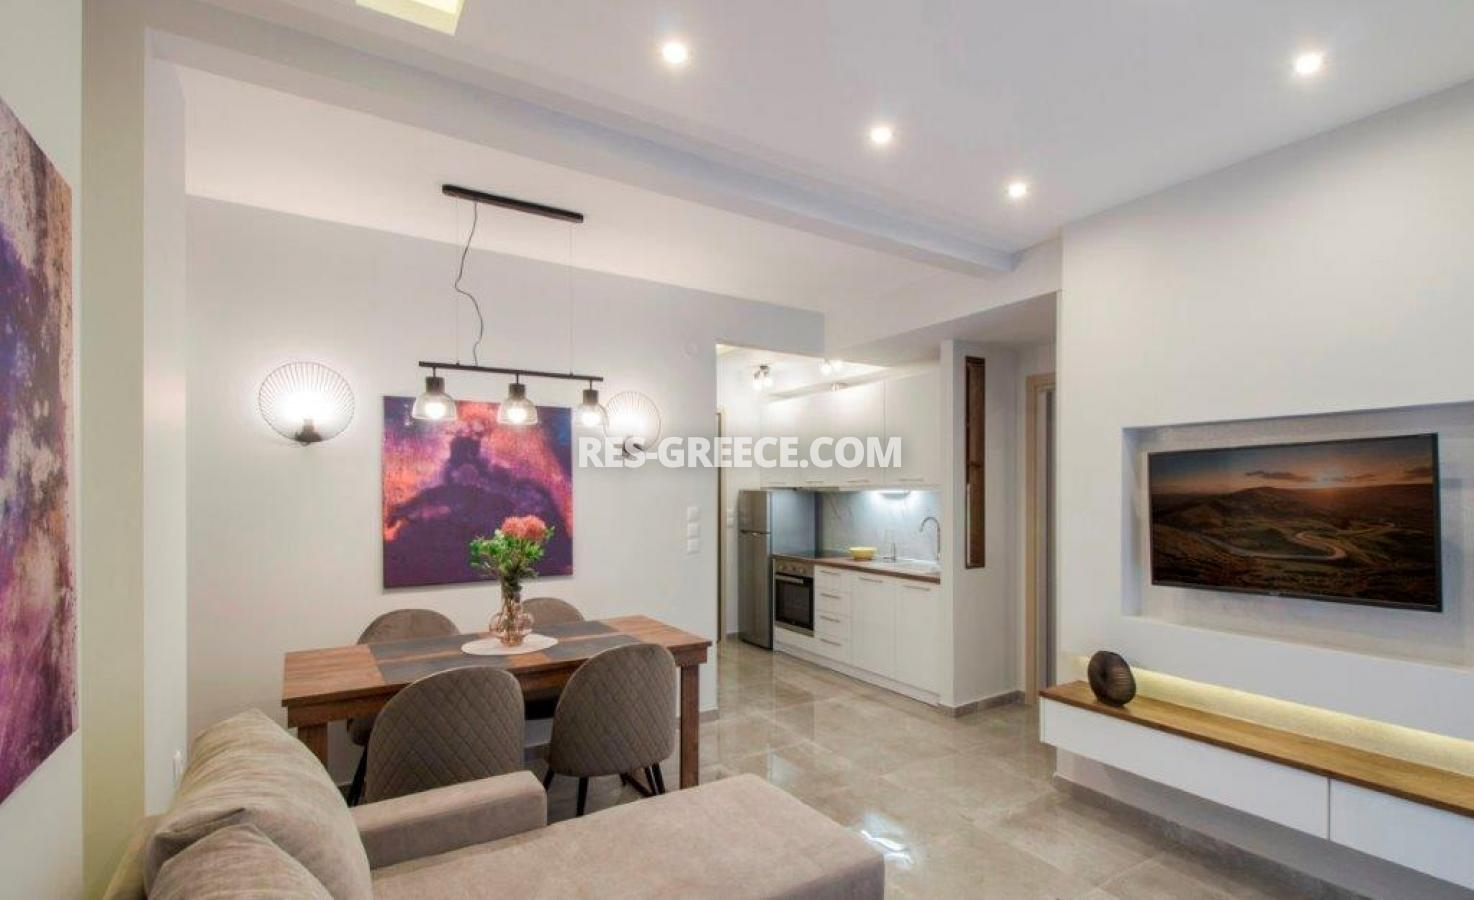 Kontogouri, Central Macedonia, Greece - fully furnished and decorated apartment after full renovation near Nea Paralia - Photo 3